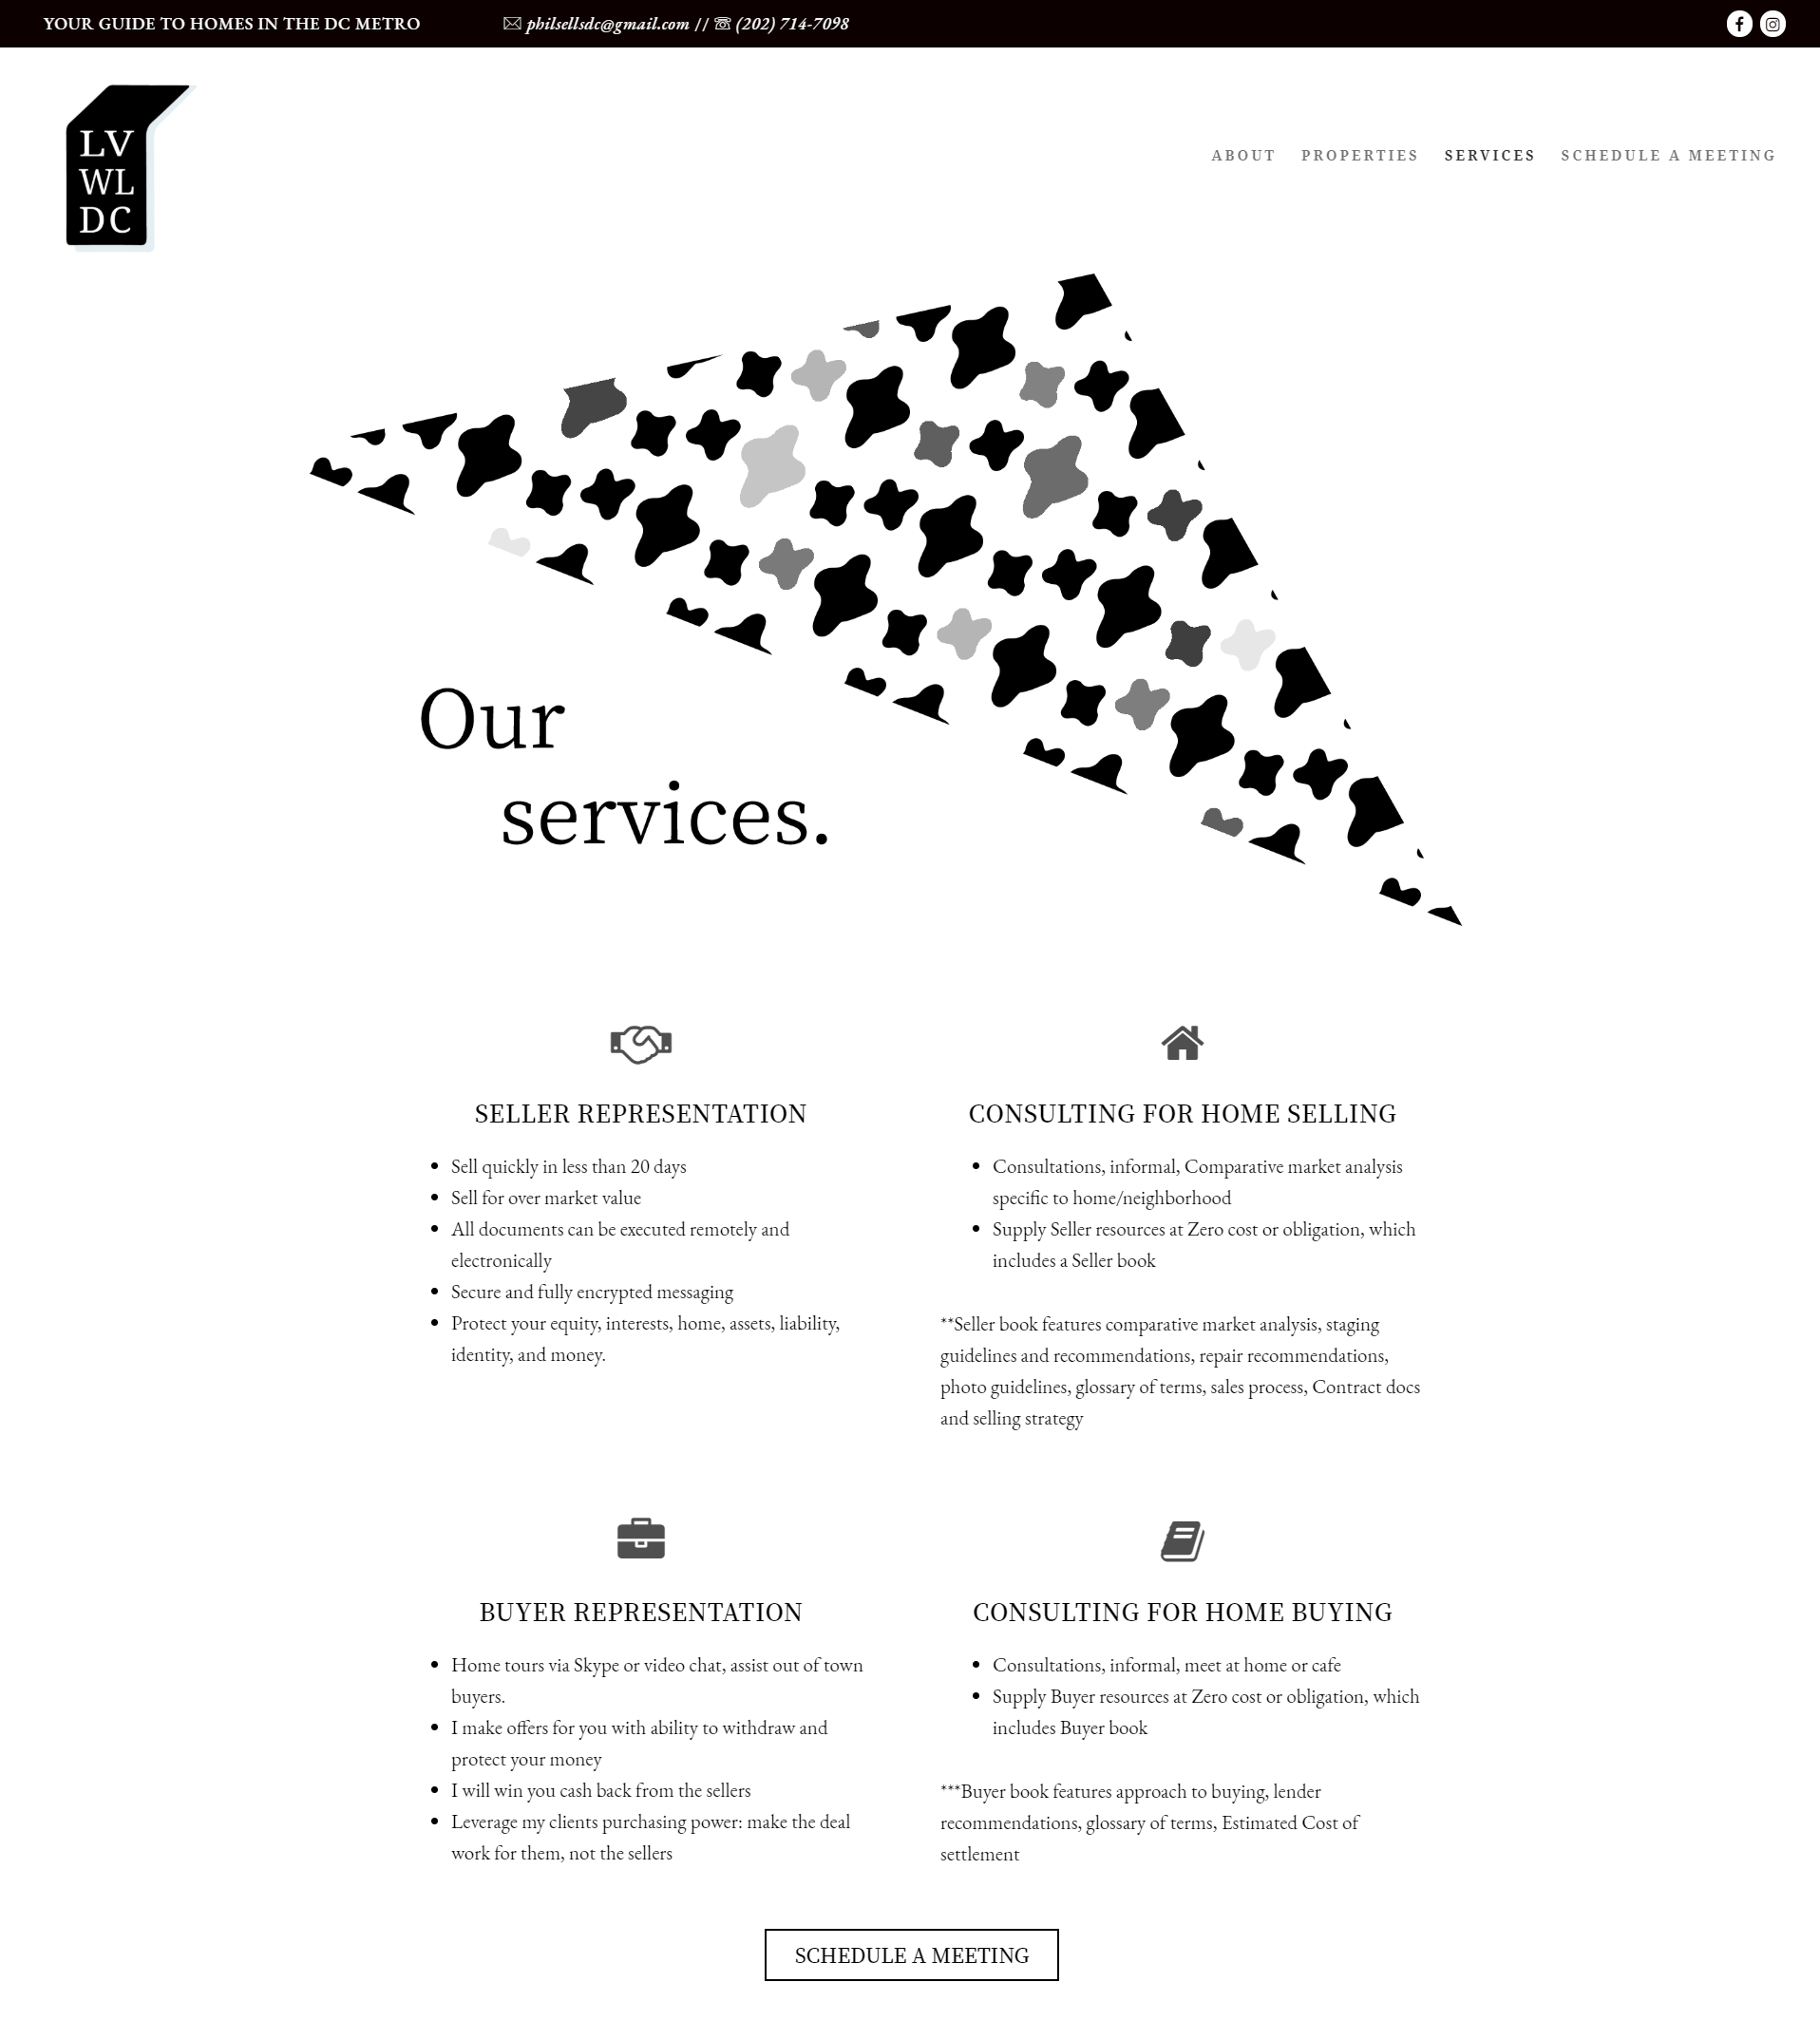 services-1.png